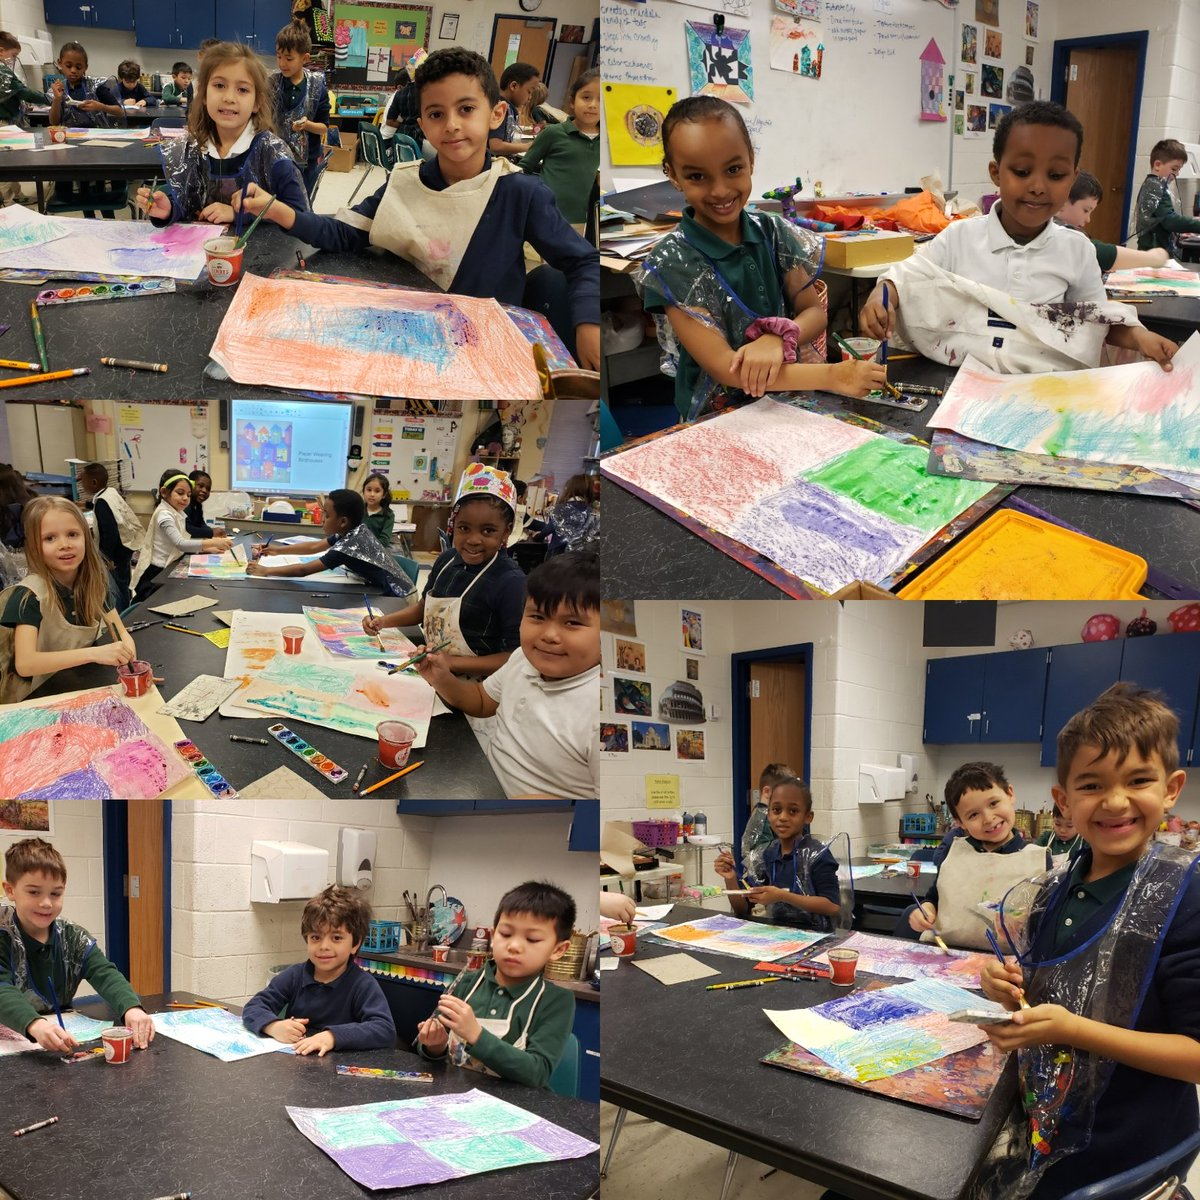 First graders enjoyed painting over their textured backgrounds with watercolors #pbjays #pwcsartspic.twitter.com/eRdNA7SSxm